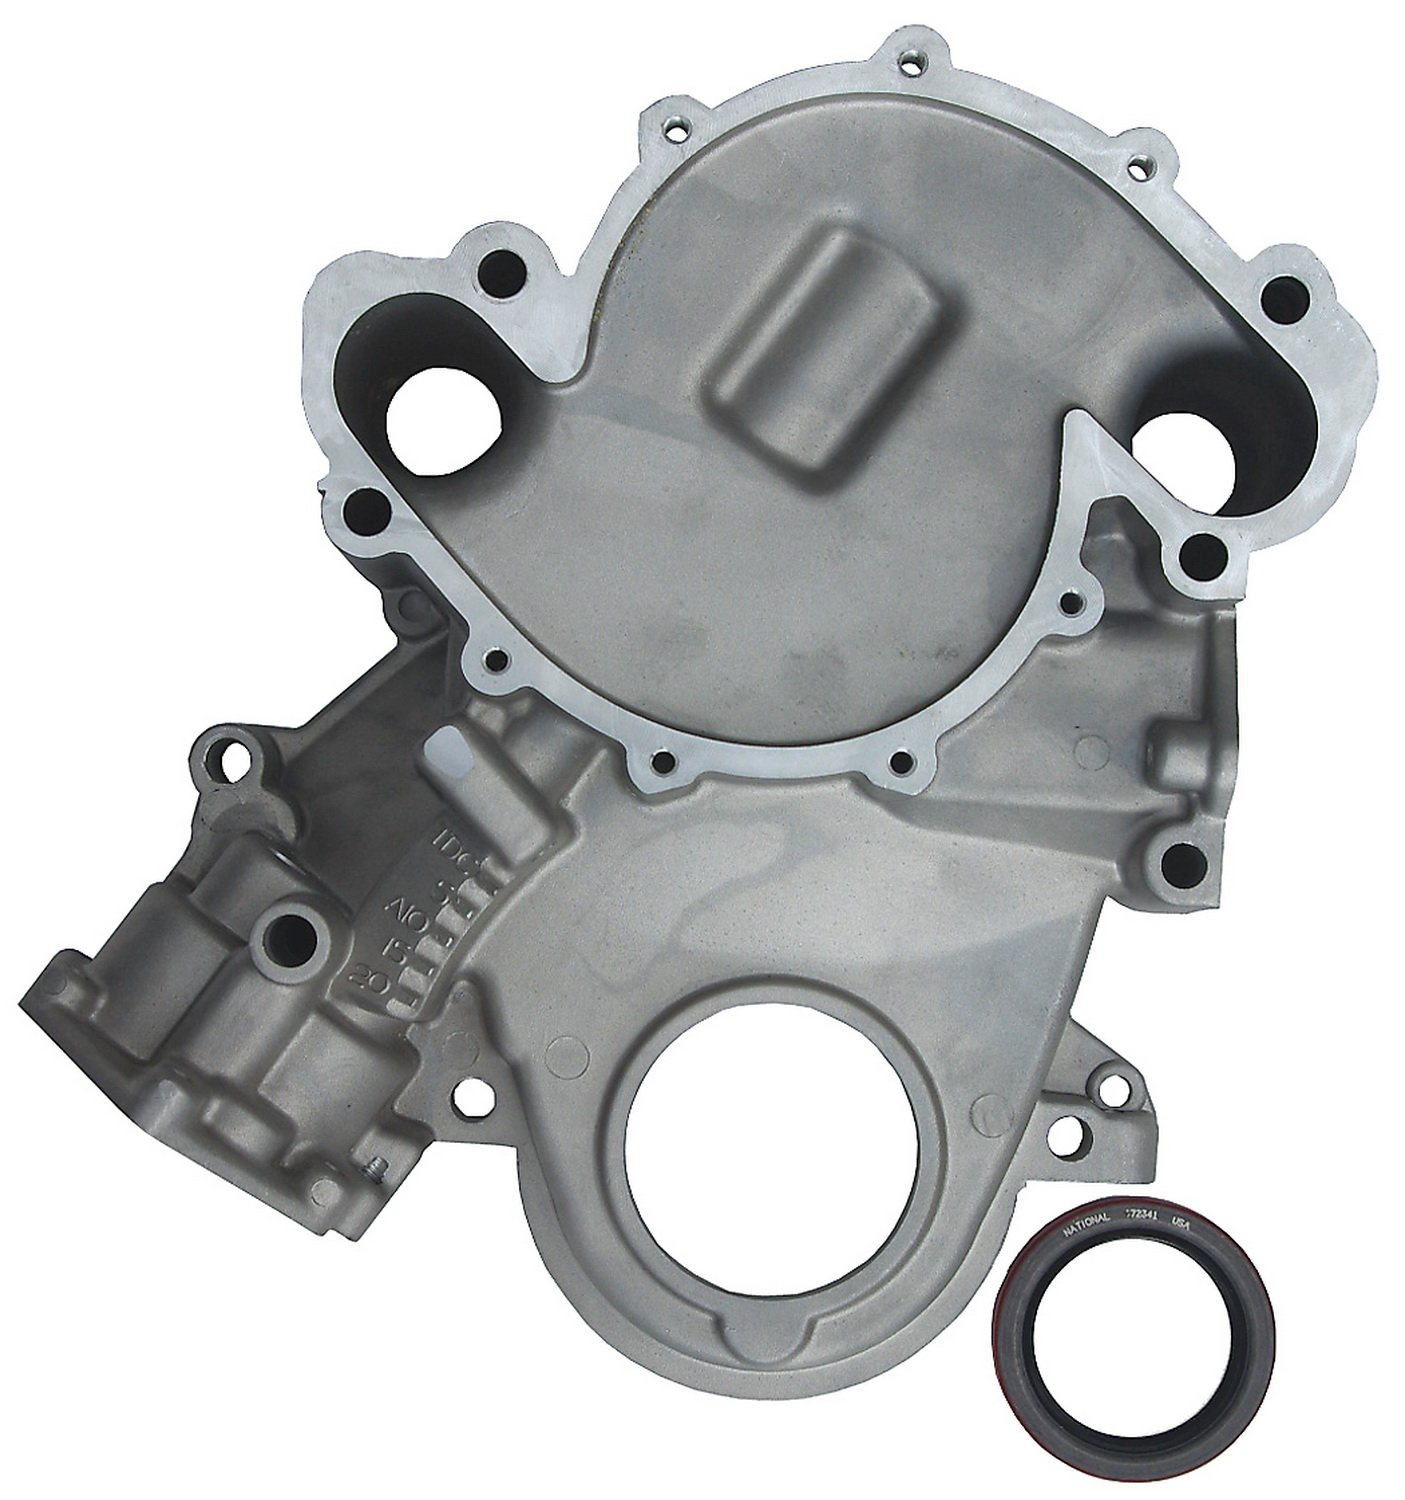 Proform 69500 Timing Cover by ProForm